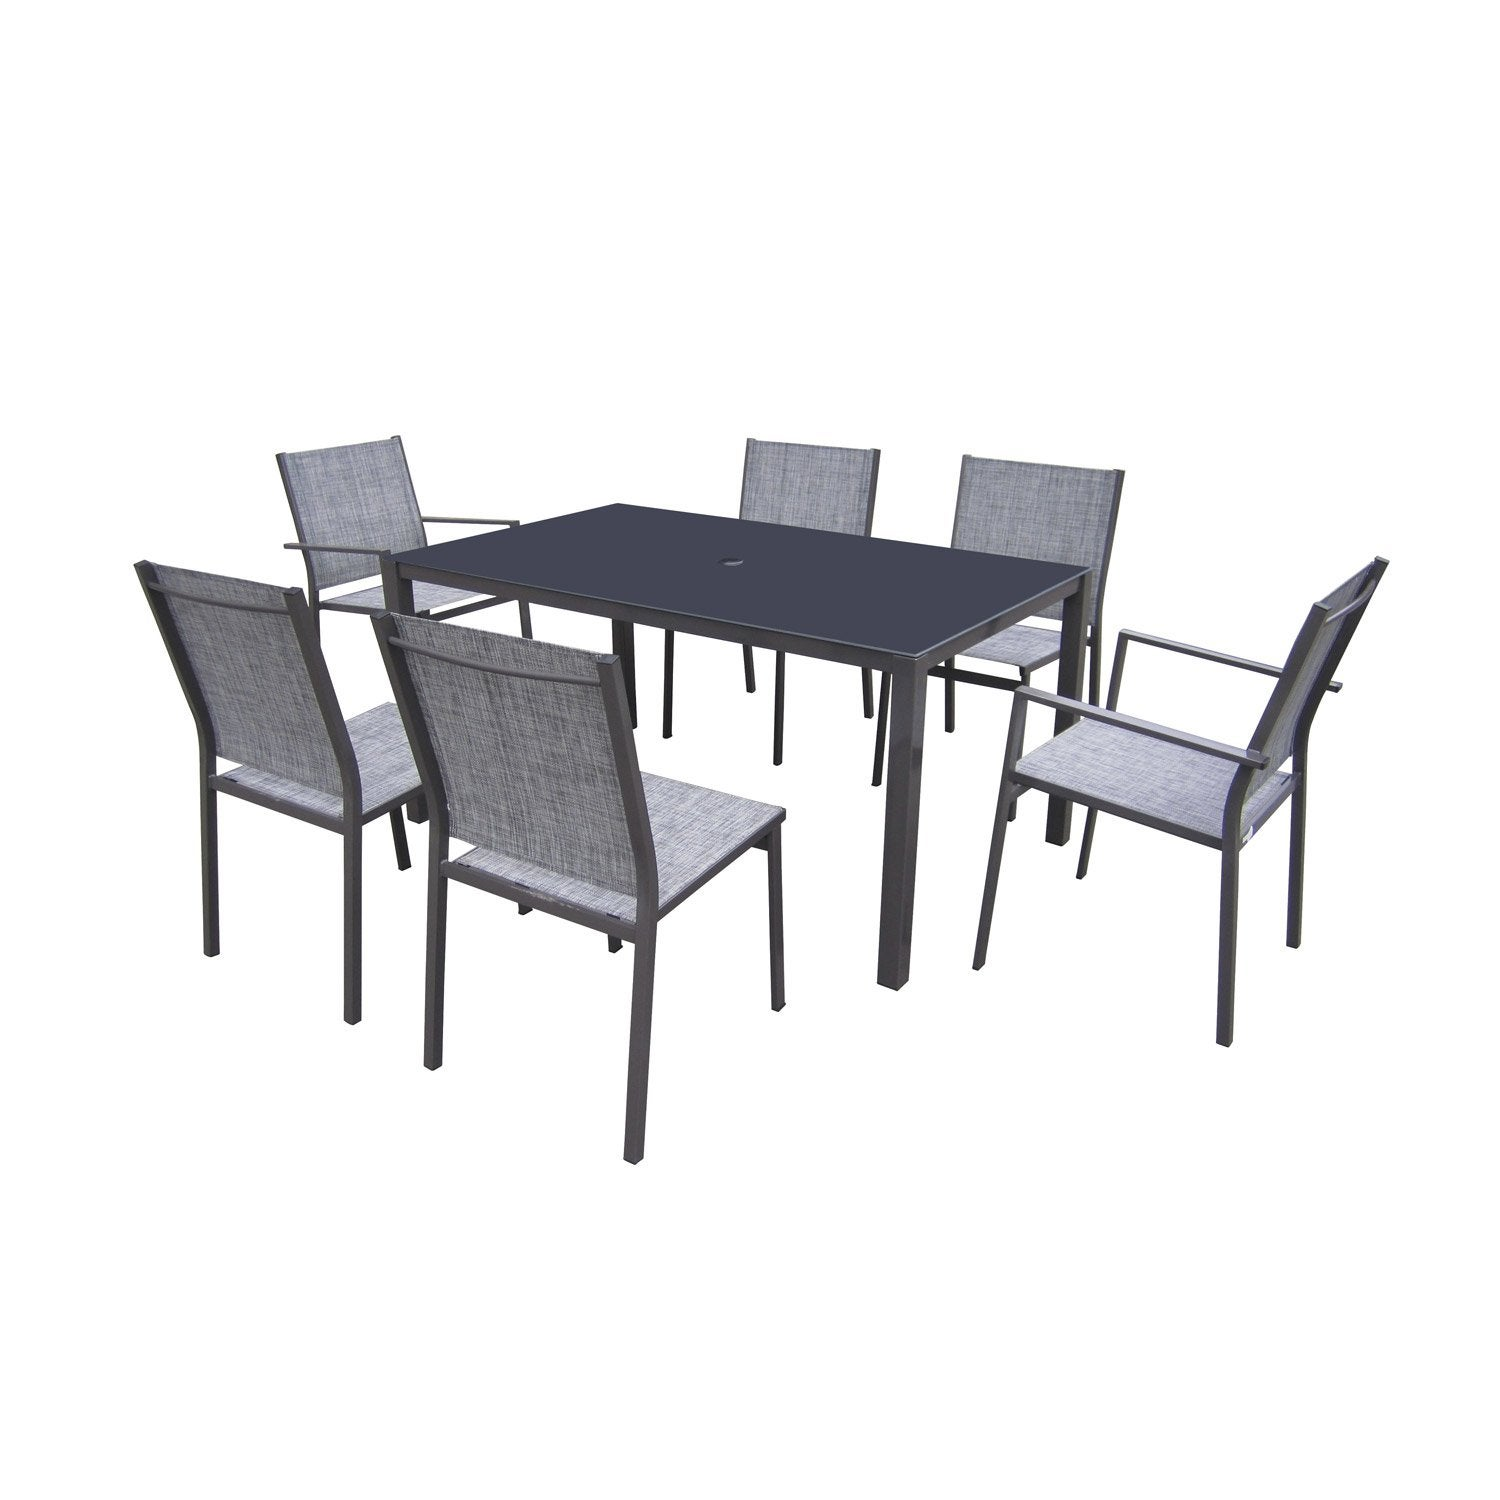 Salon de jardin denver acier gris anthracite 1 table 4 - Salon de jardin table ...